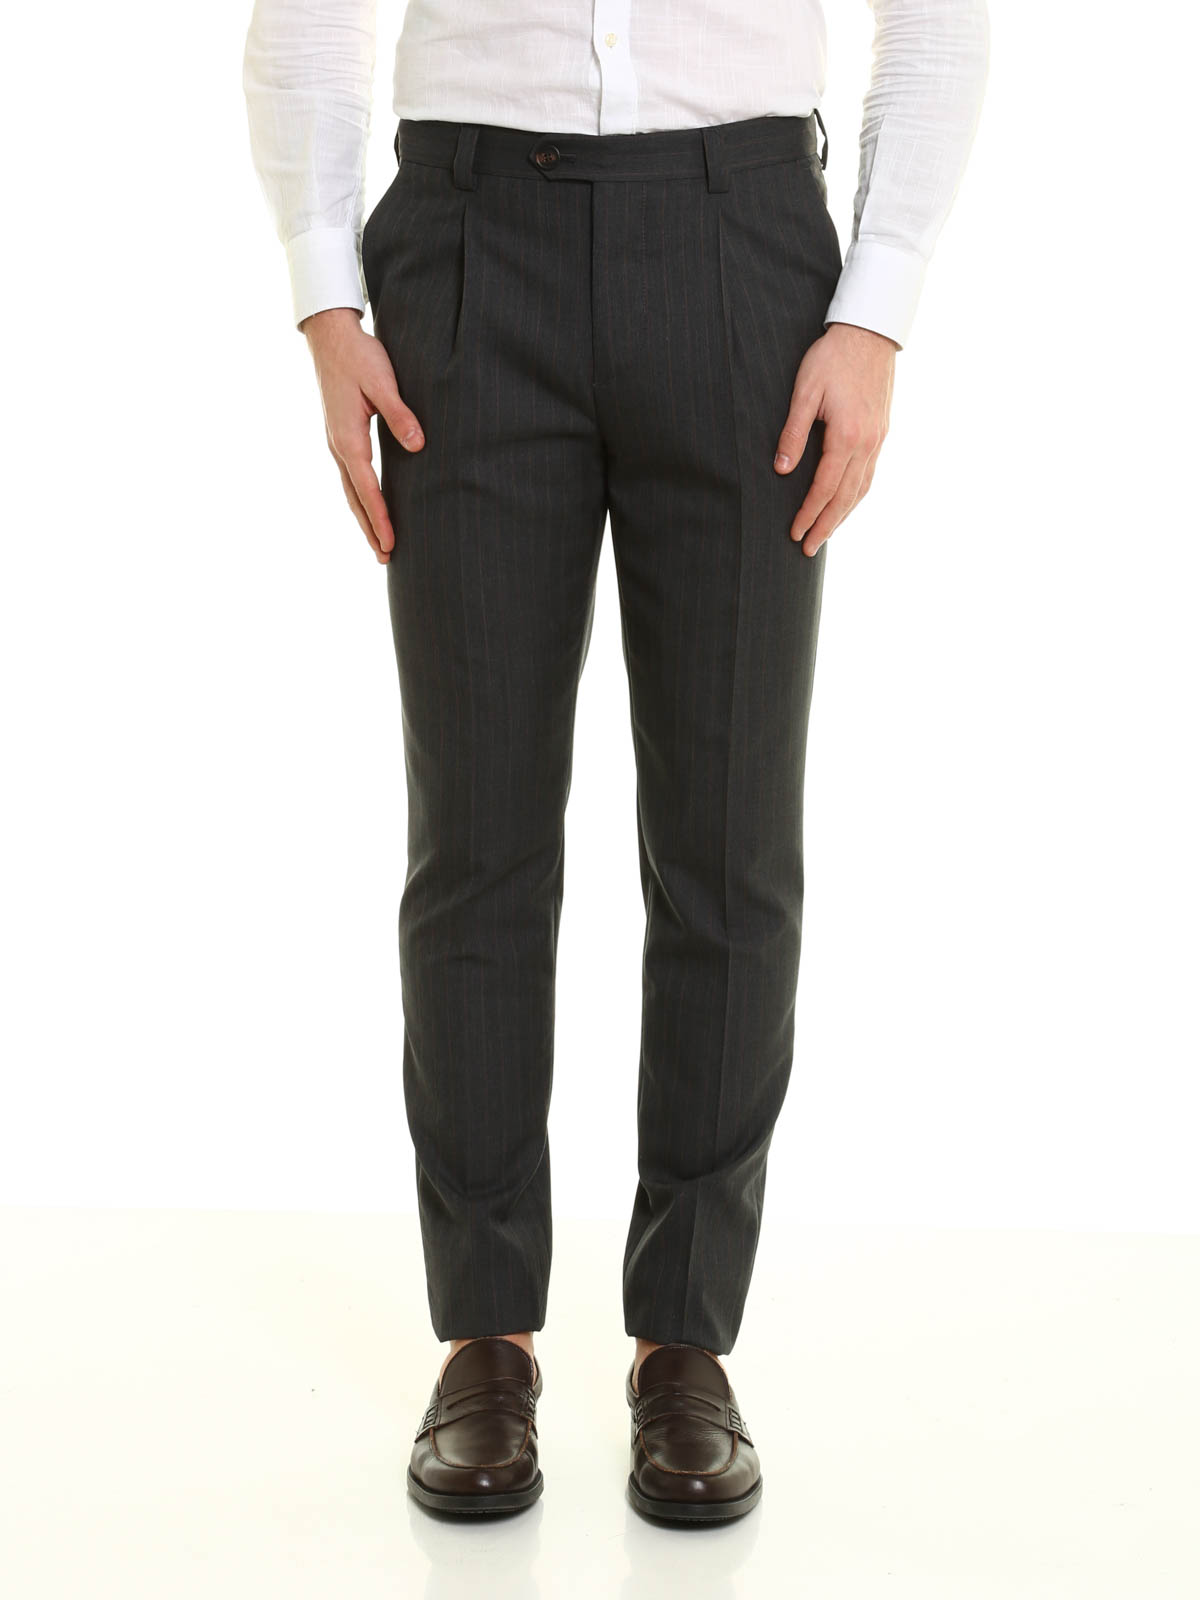 Buy men's formal trousers online on Myntra from the comfort of your home or office. Find your favourite brand and style in the biggest online collection of men's formal trousers in India. The beauty of this collection is that you find everything in one place: Brands, styles, colours - its all there on al9mg7p1yos.gq